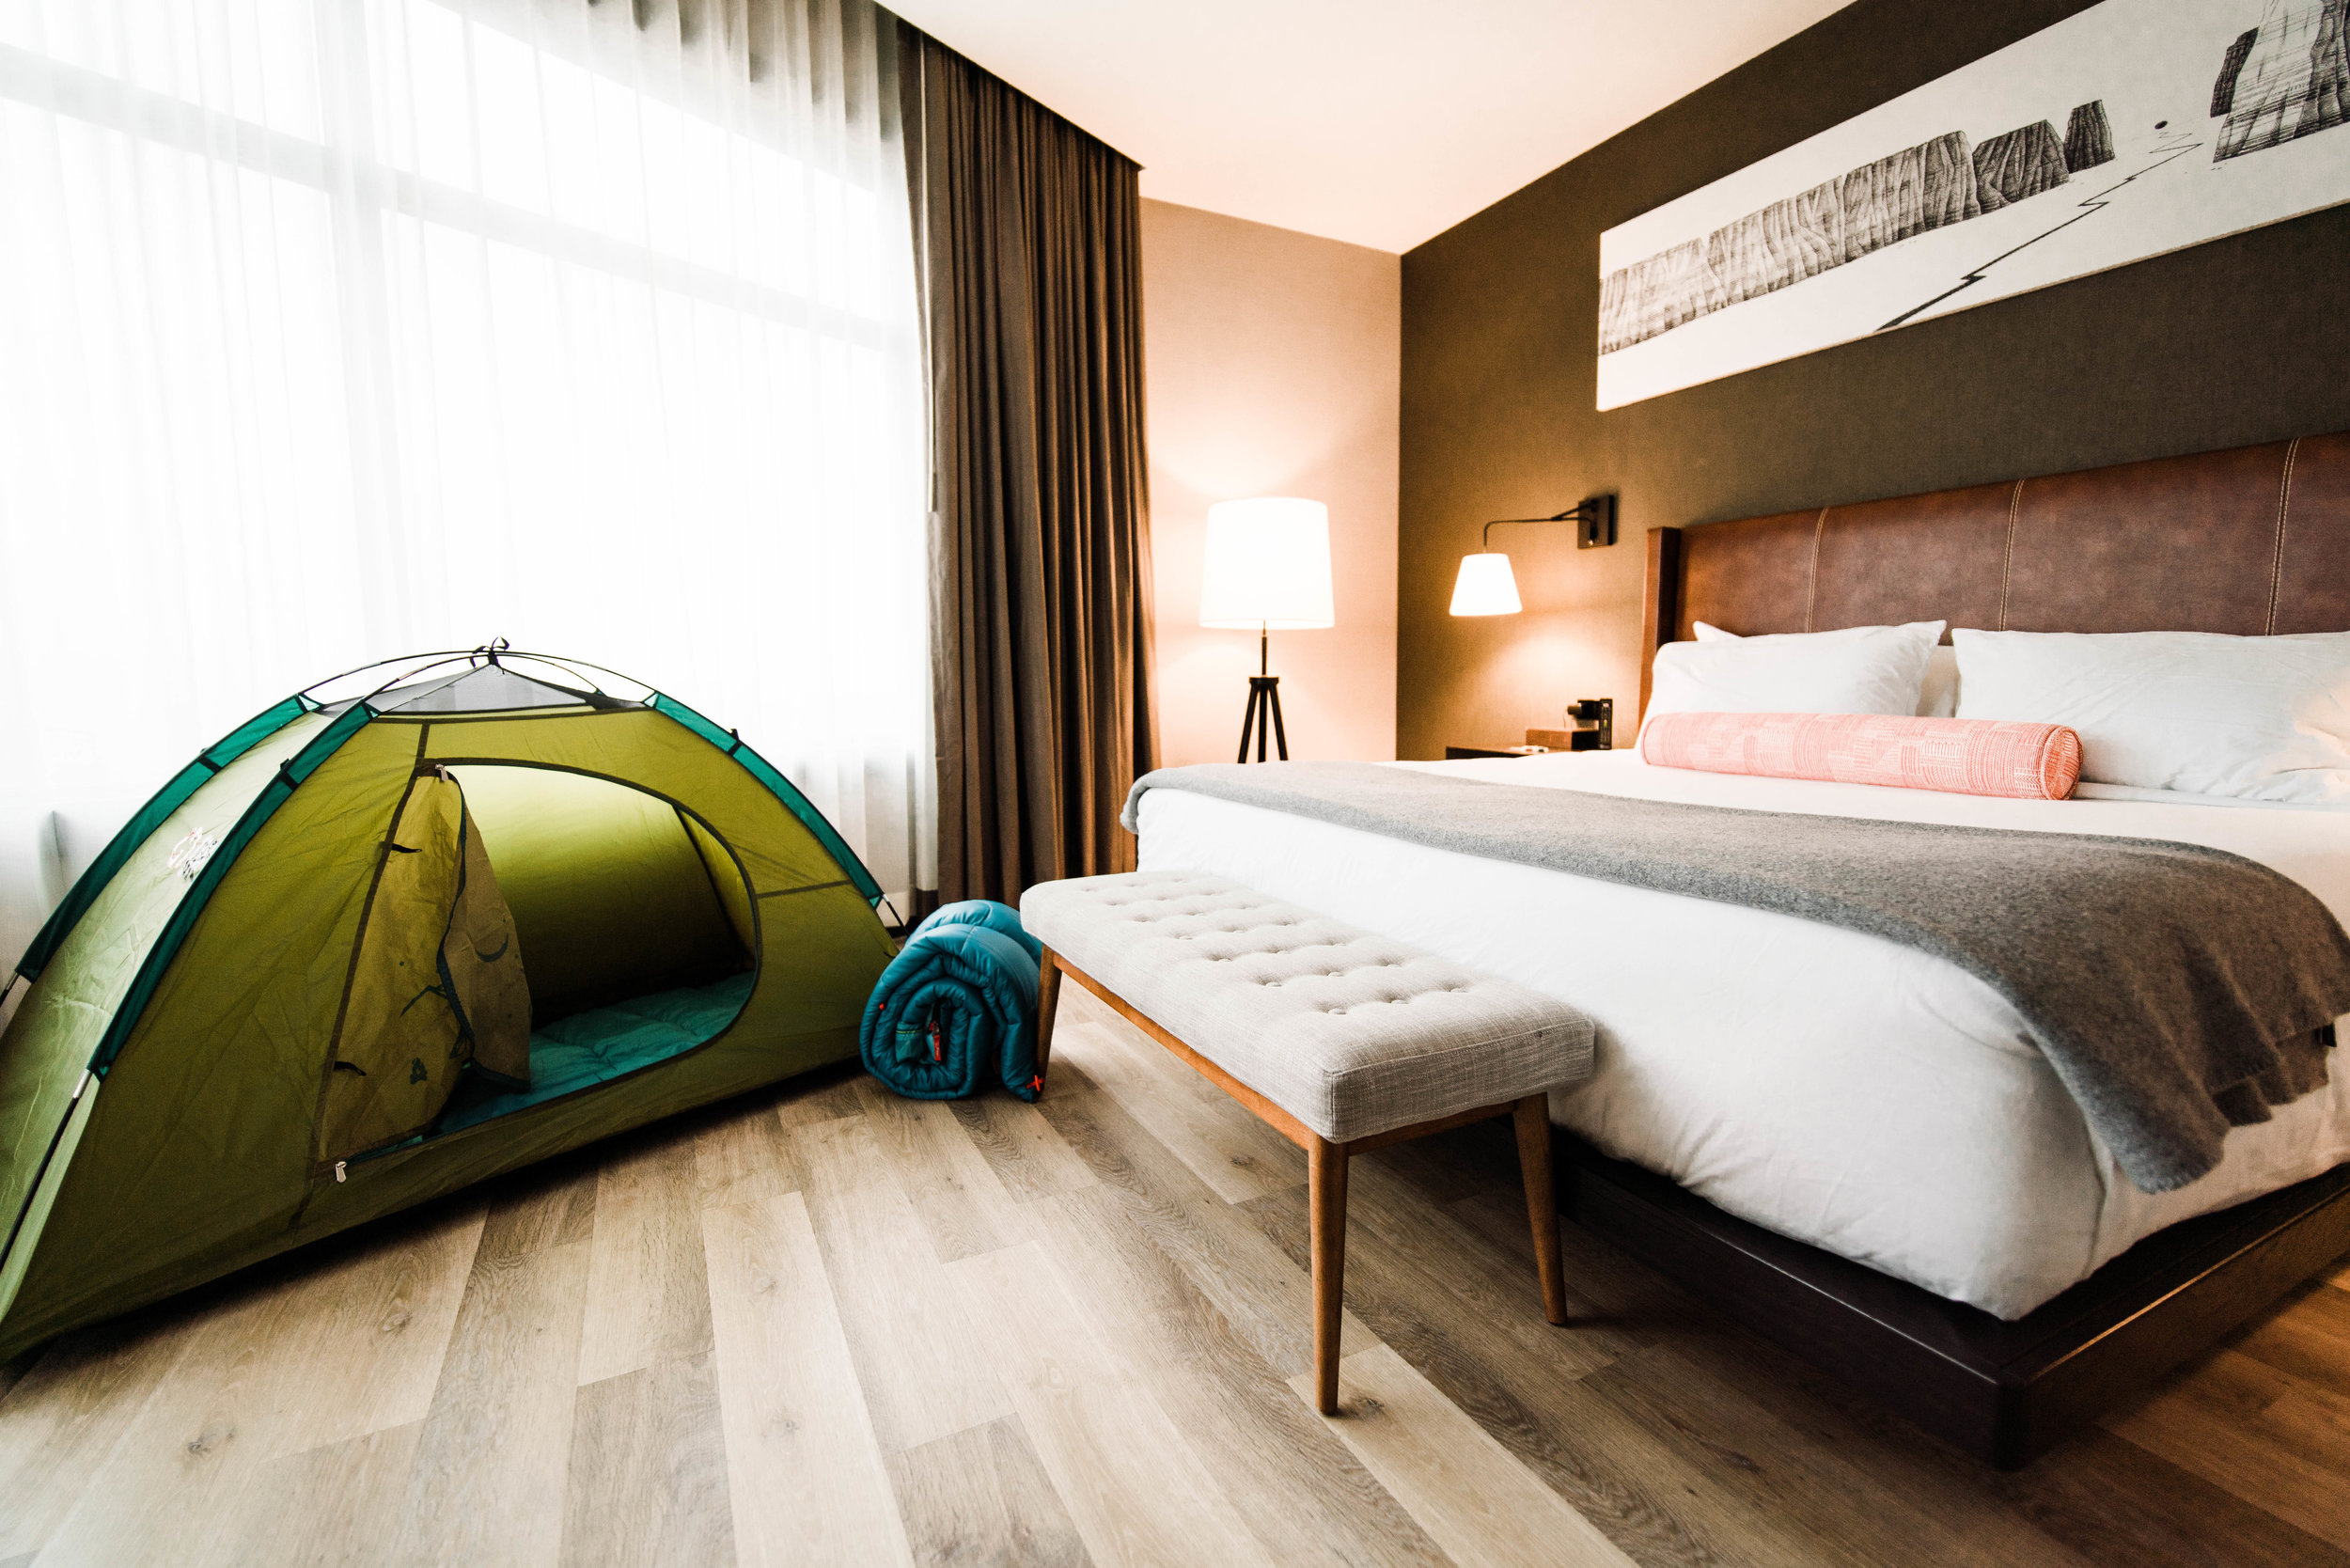 denver commercial photographer tim gillies photography origin hotel red rocks room with tent